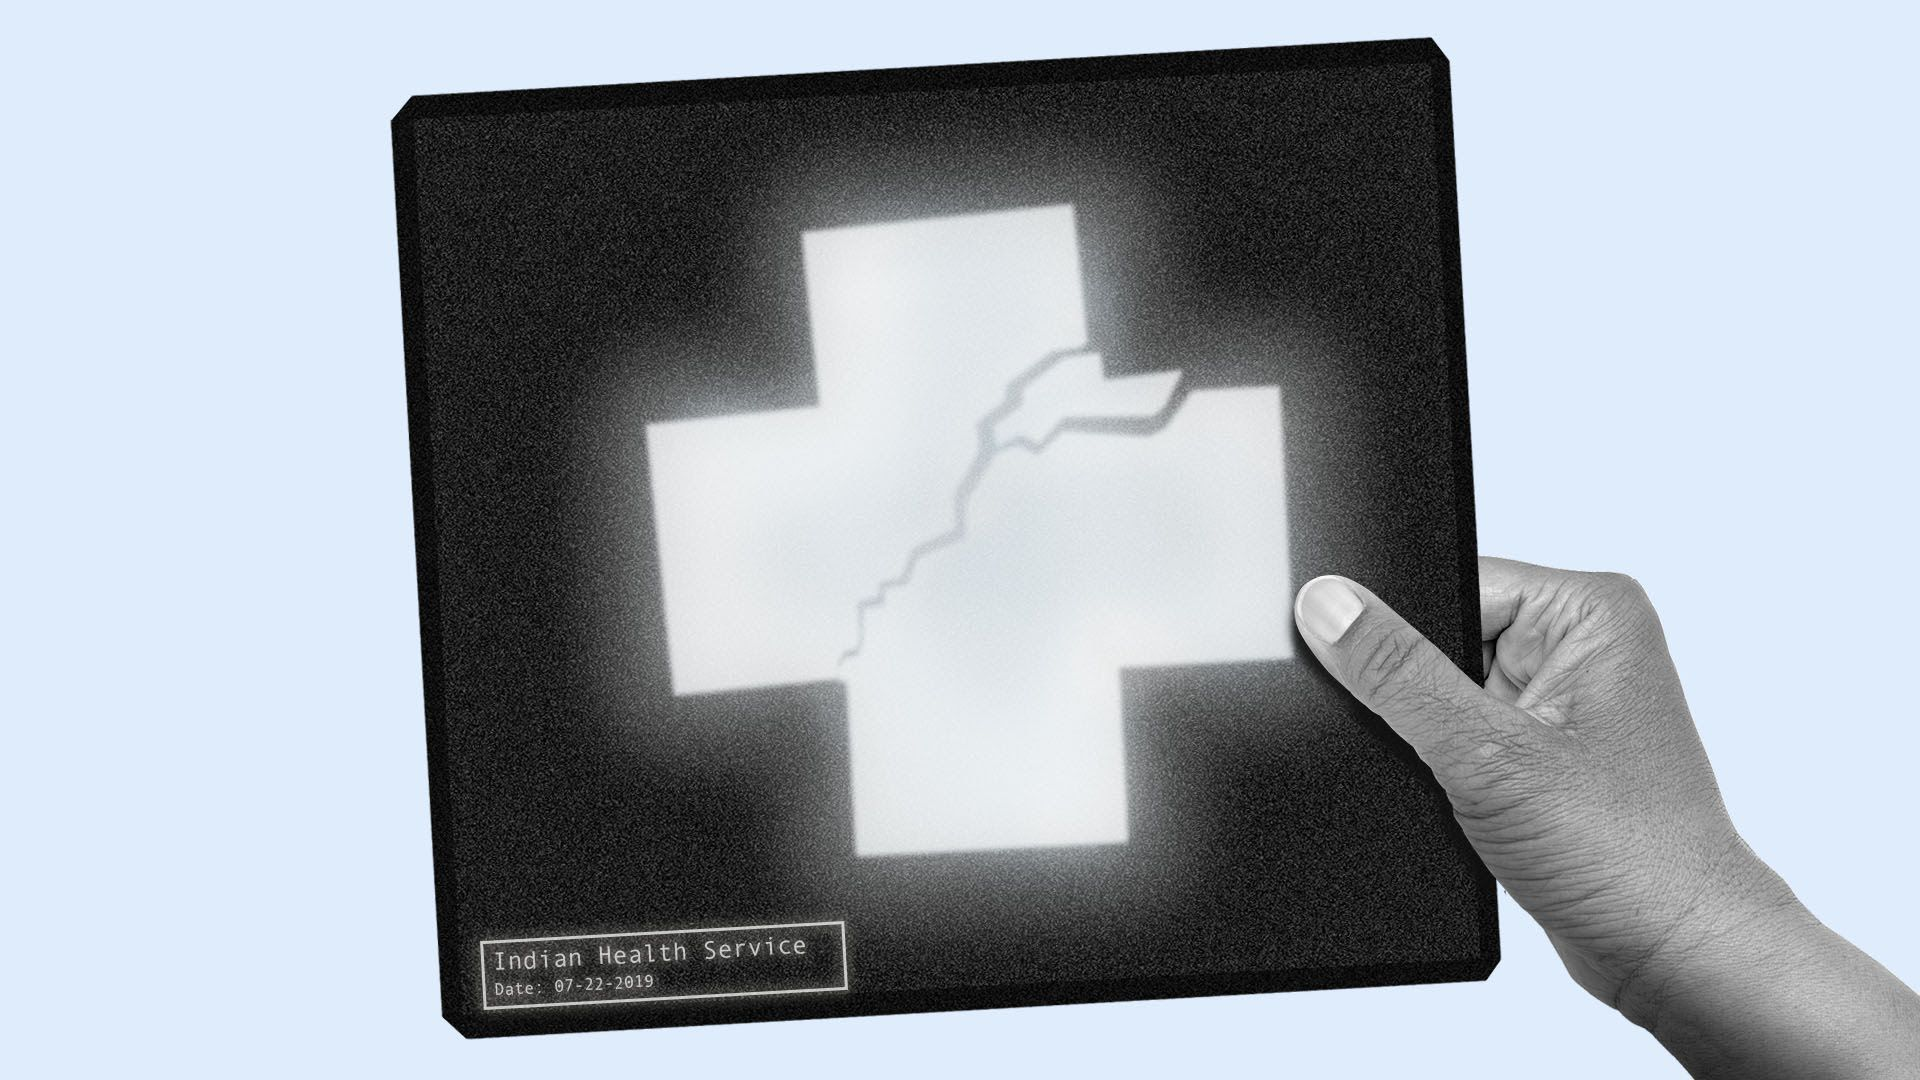 A hand holding up a broken health care symbol x-ray